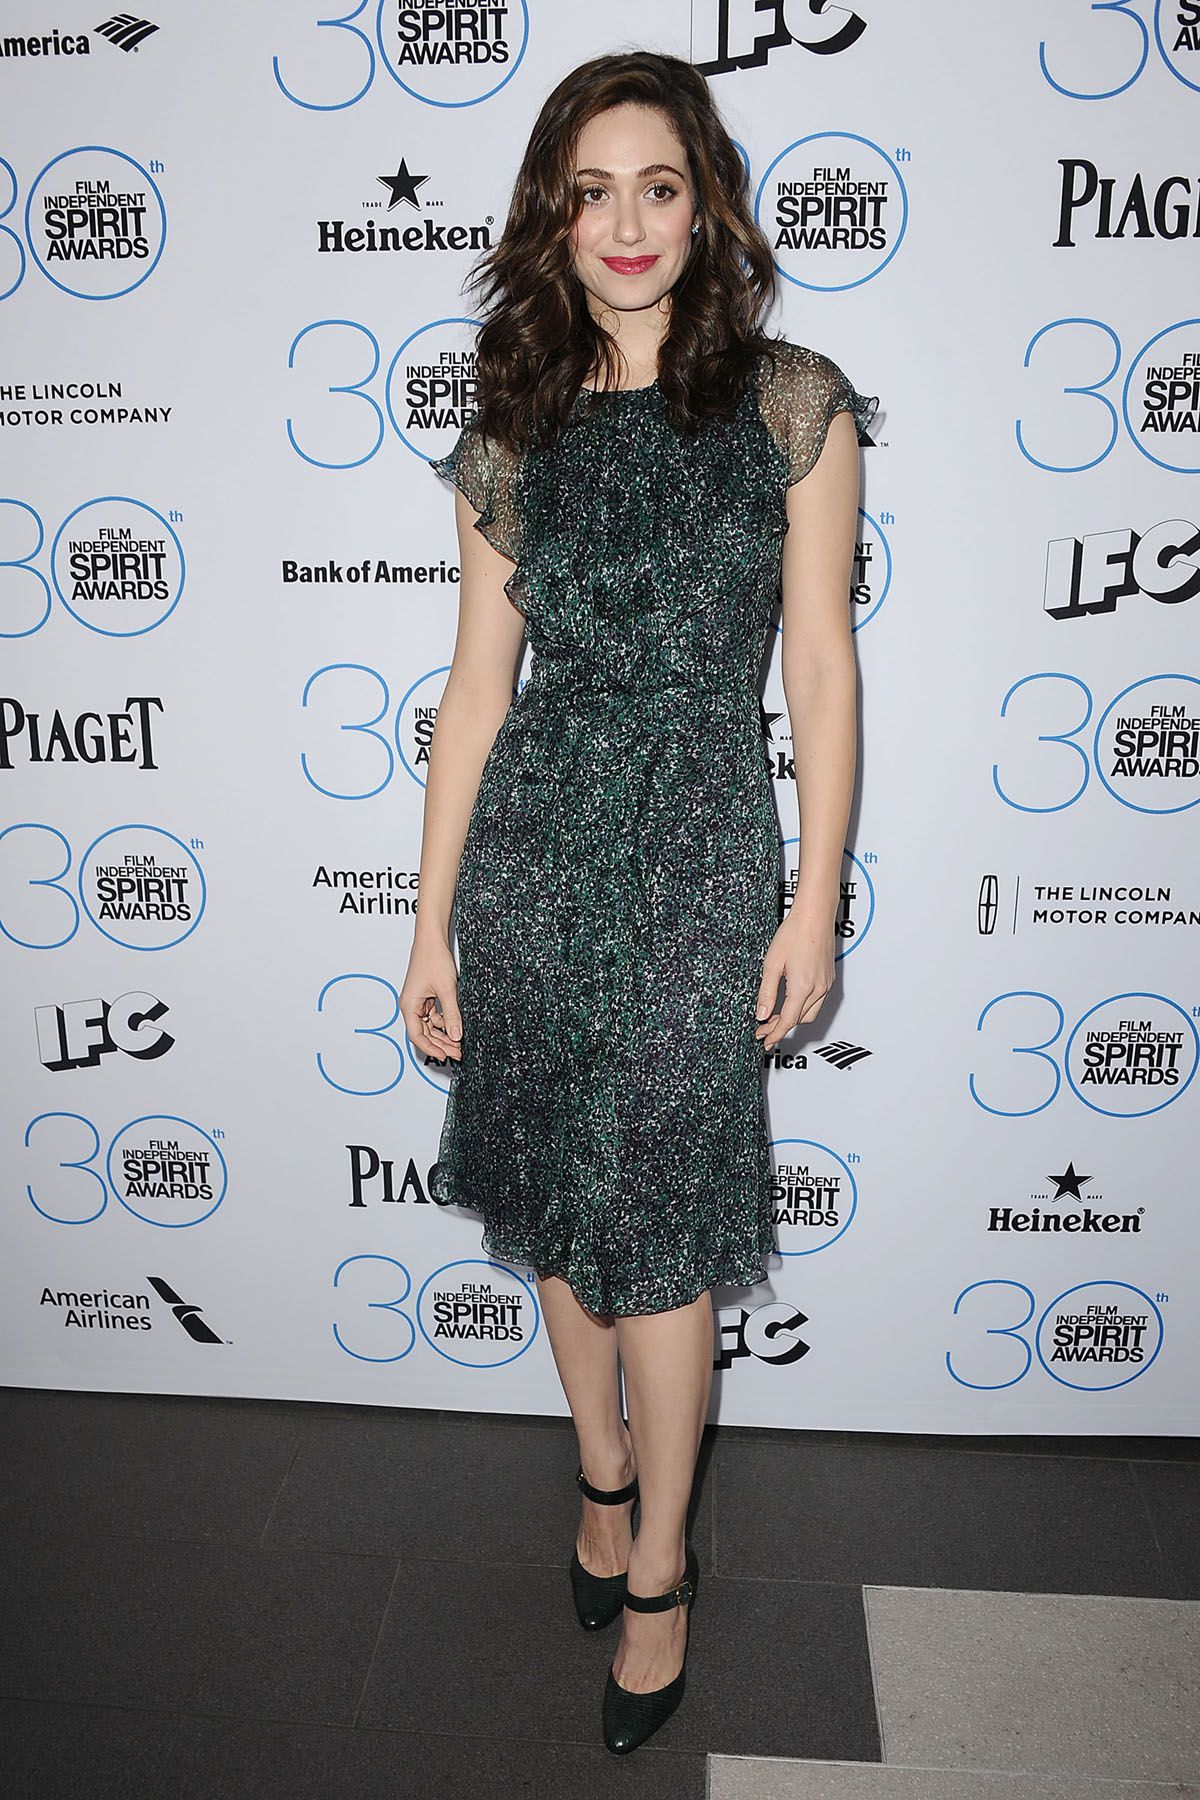 WEST HOLLYWOOD, CA - JANUARY 10:  Actress Emmy Rossum attends the 2015 Film Independent filmmaker grant and Spirit Awards nominees brunch at BOA Steakhouse on January 10, 2015 in West Hollywood, California.  (Photo by Jason LaVeris/FilmMagic)